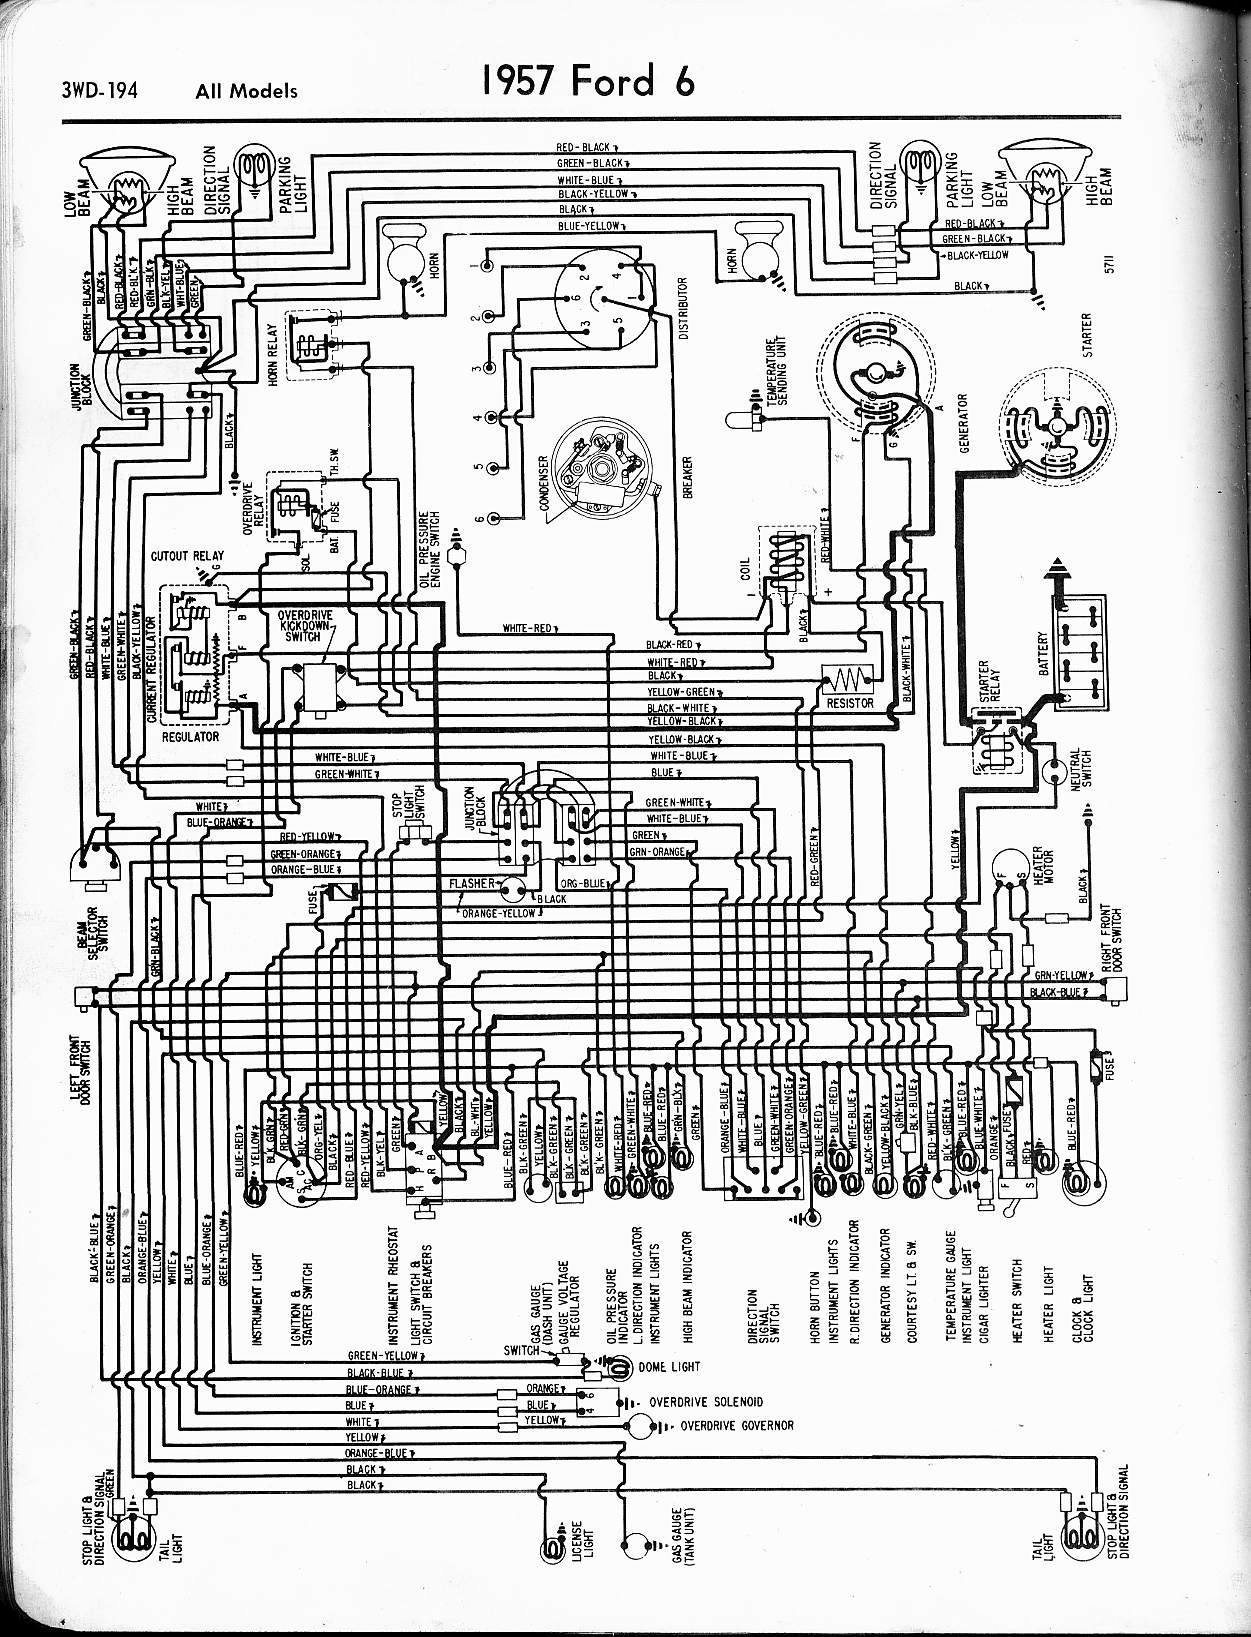 57_ford_wiring ford diagrams ford ltl 9000 wiring diagram at creativeand.co